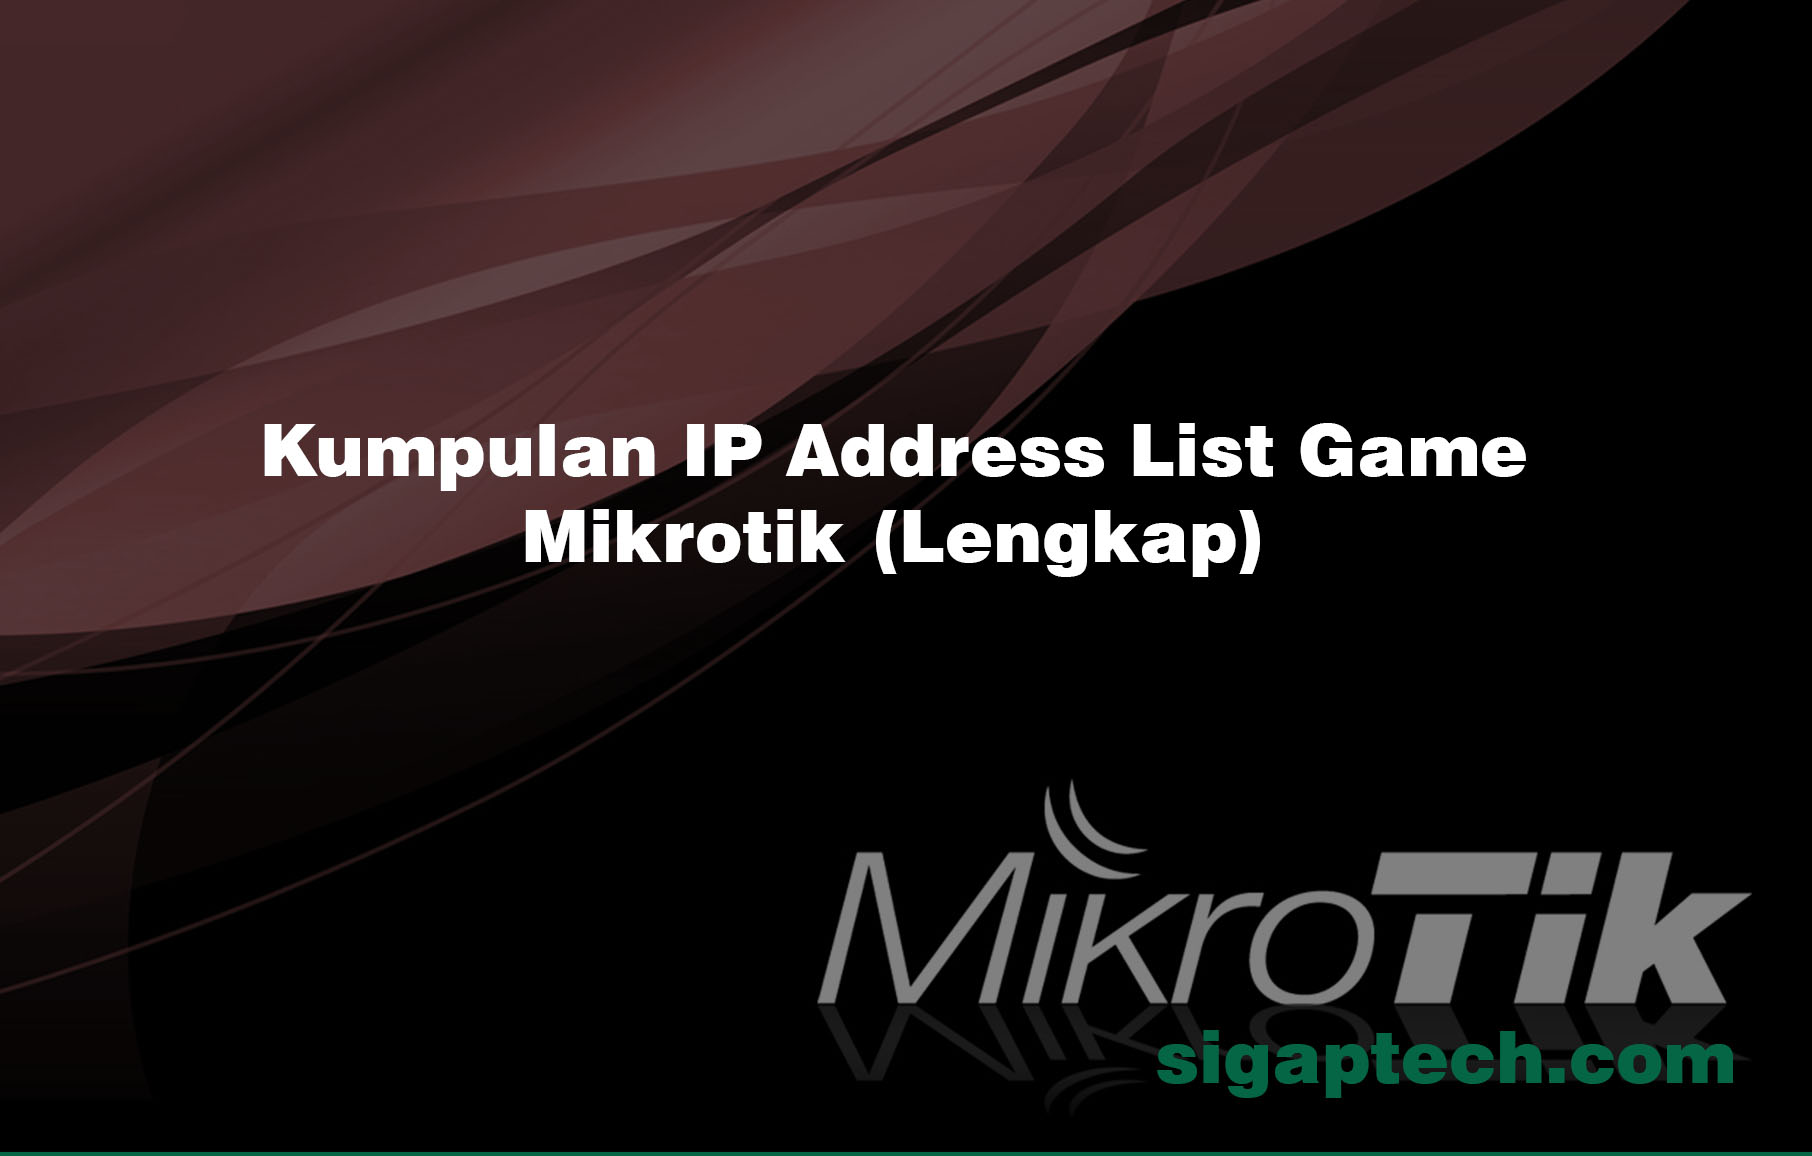 Kumpulan IP Address List Game Mikrotik (Lengkap)